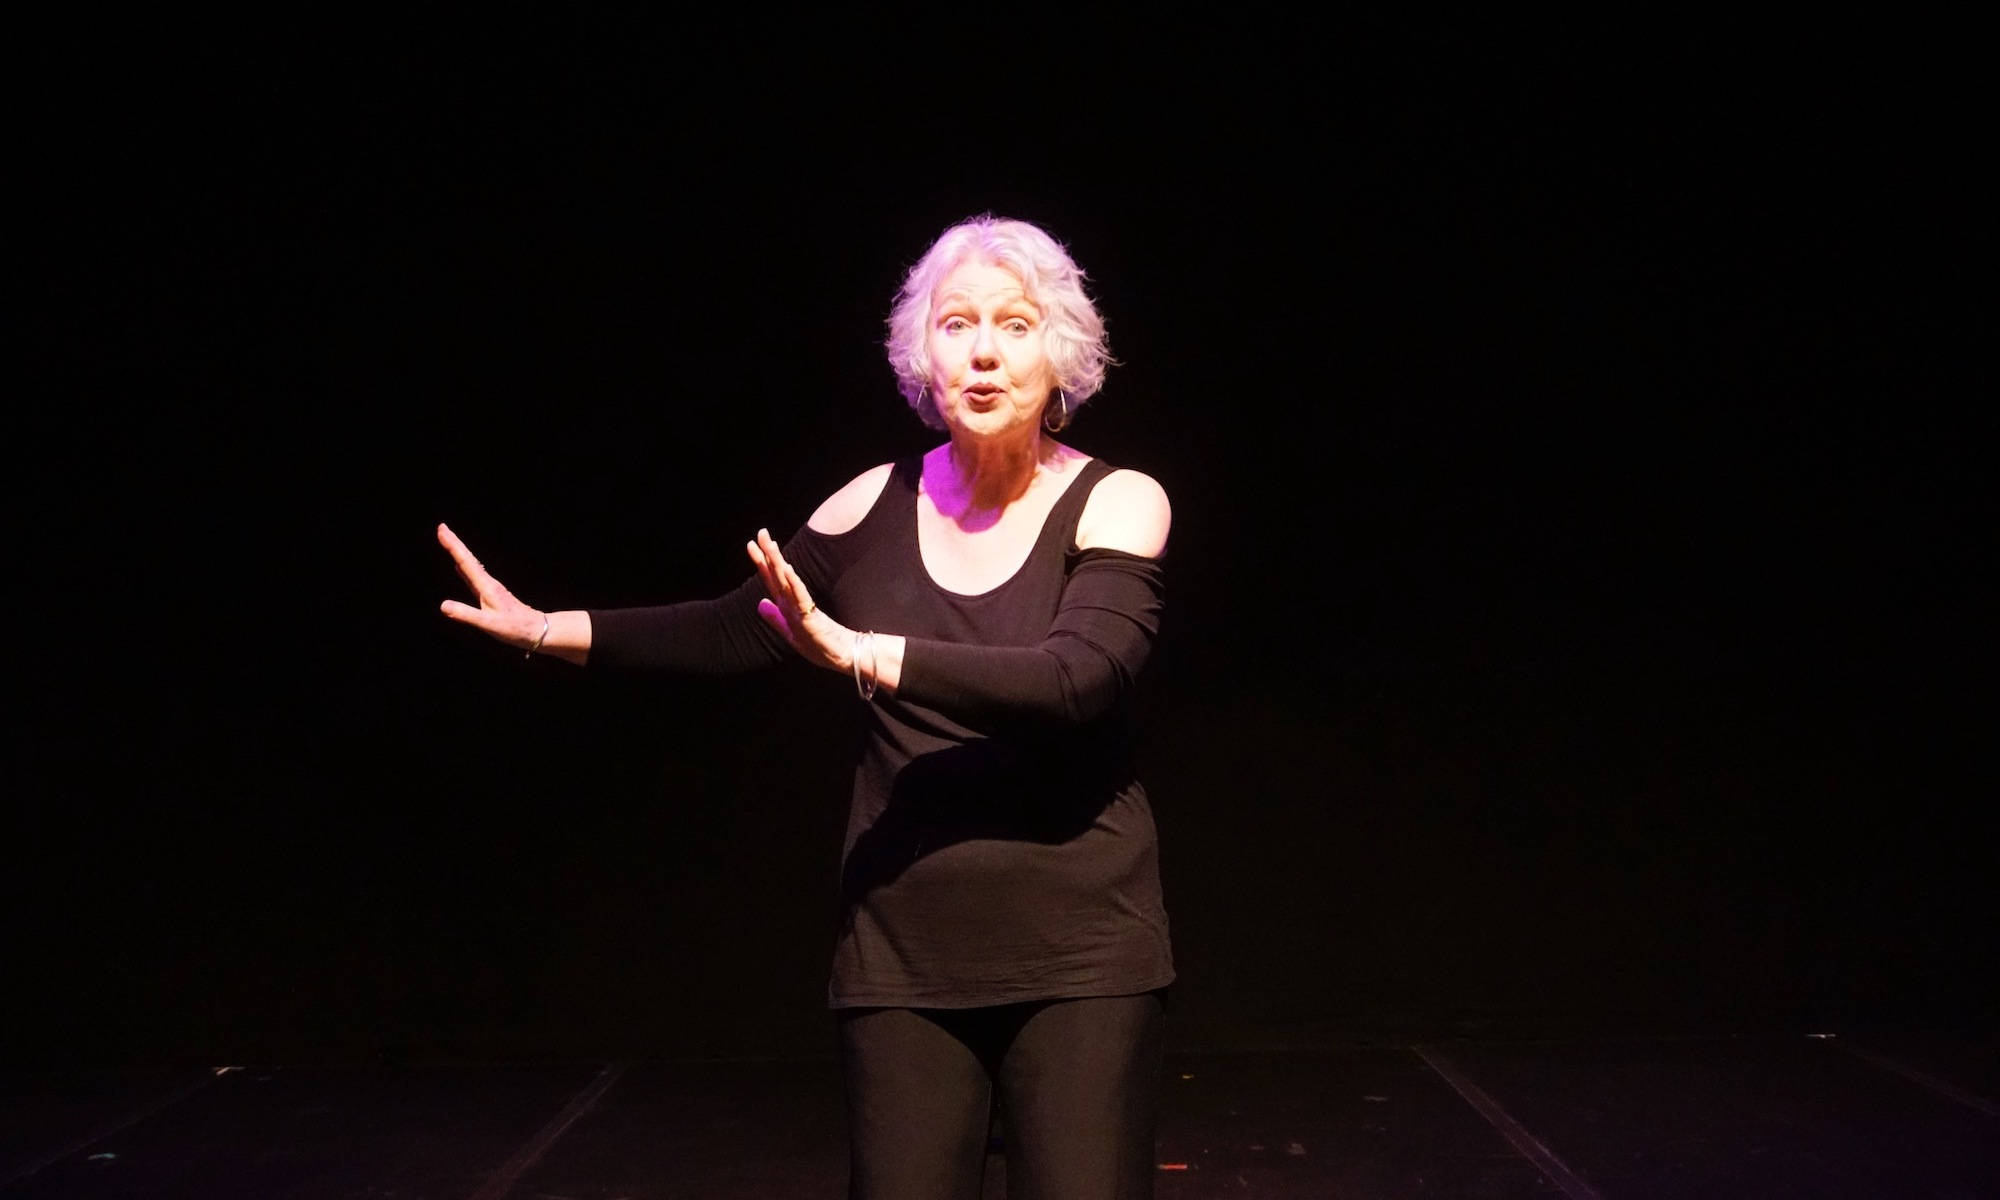 Christina Augello, Solo performer, white woman, senior citizen, stands onstage in black pantsuit, a lavender light on her face.